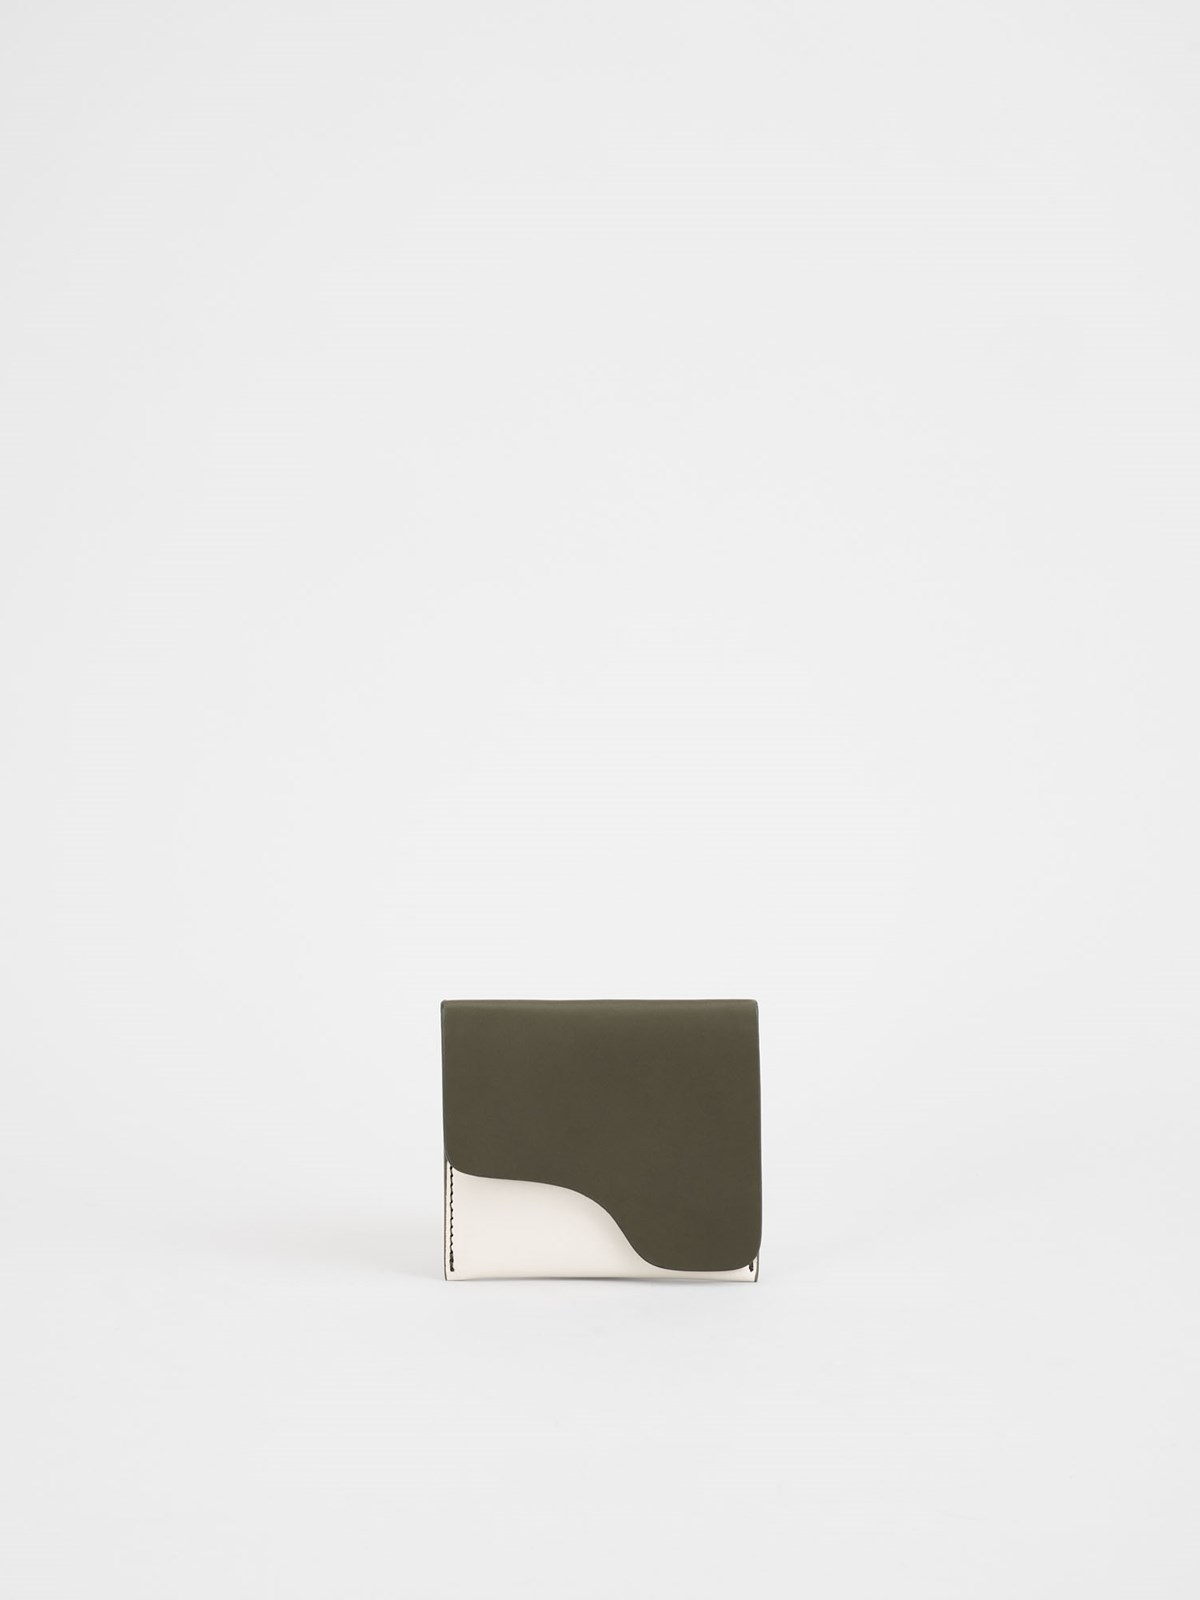 Olba Turtle Wallet